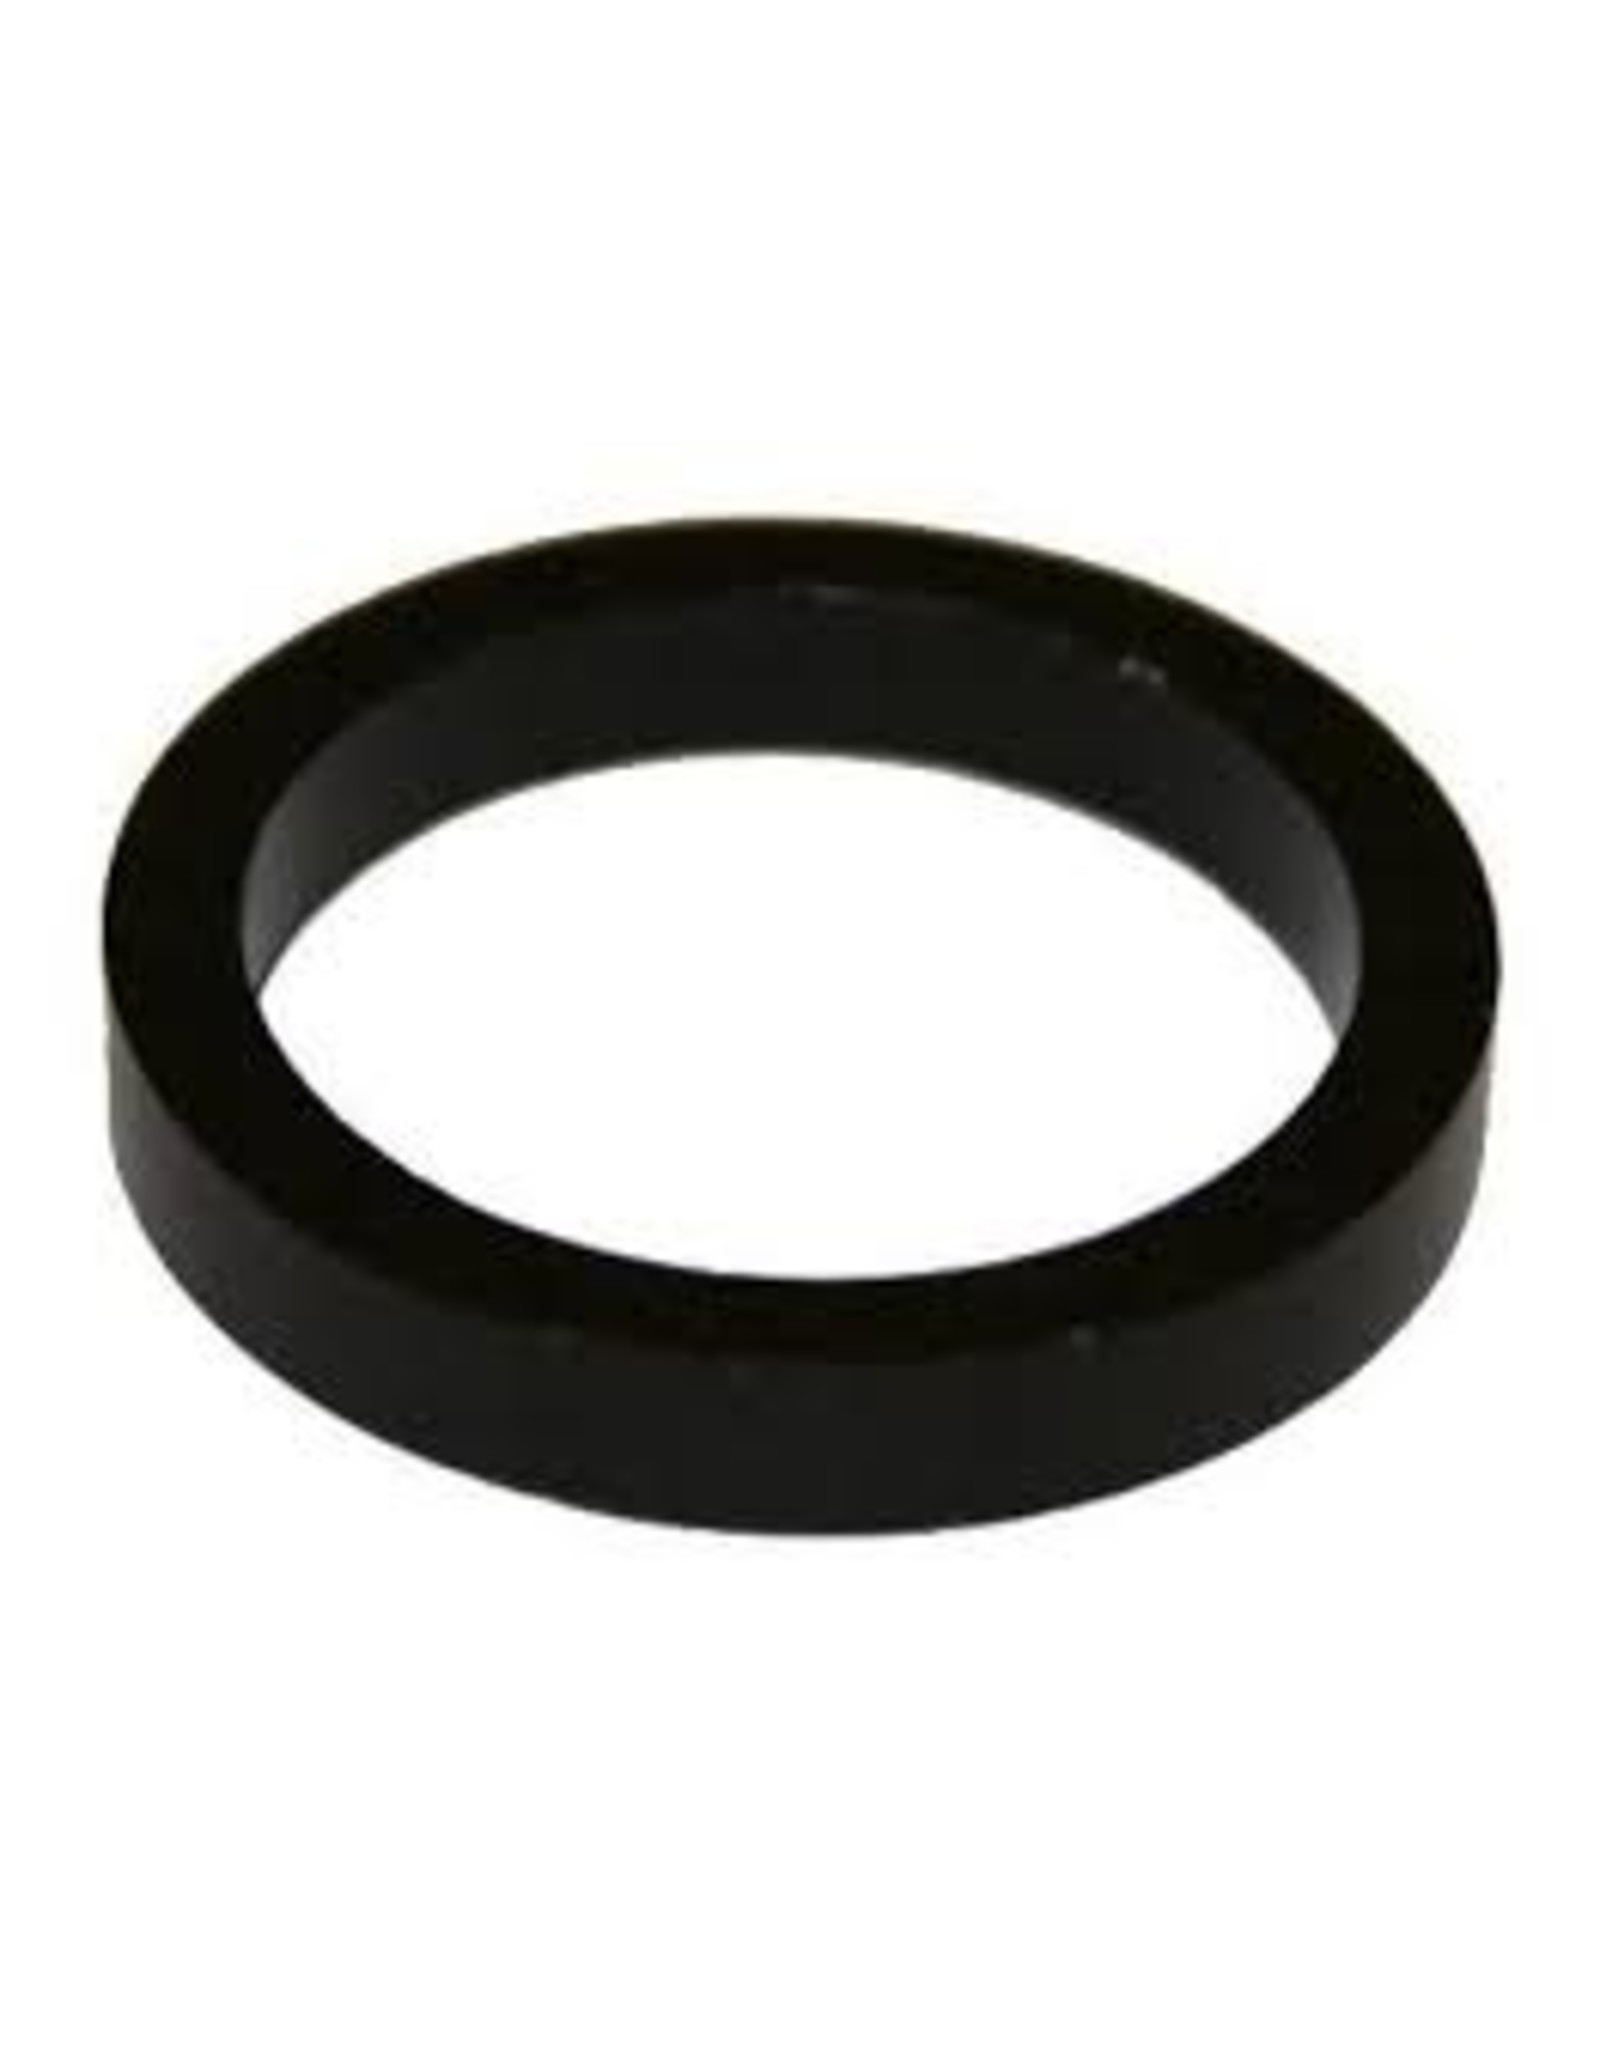 ECONO Non-Keyed Headset Spacers 28.6 x 15mm - Black